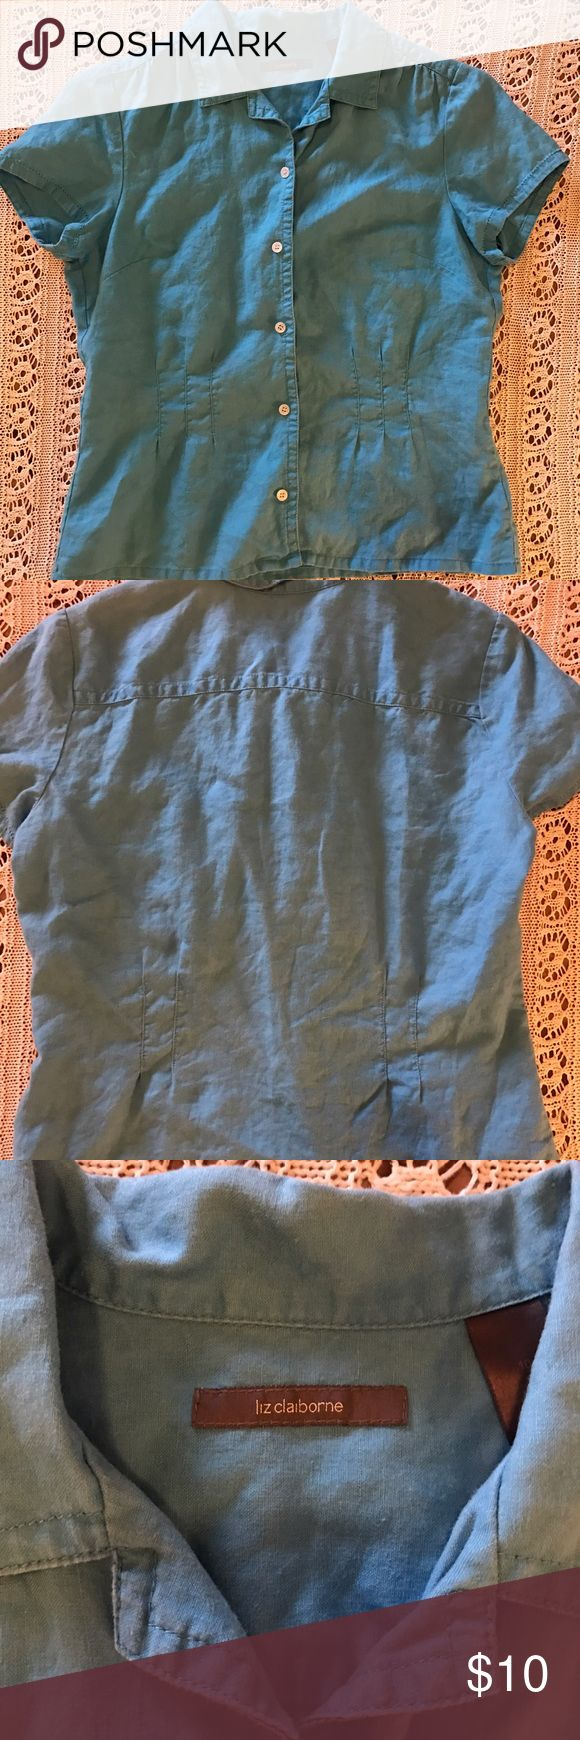 Turquoise Blue Short Sleeve Top Sz 10P This pretty top from Liz Claiborne will become a favorite~ figure-highlighting silhouette. Size 10 petite. Linen. Liz Claiborne Tops Blouses